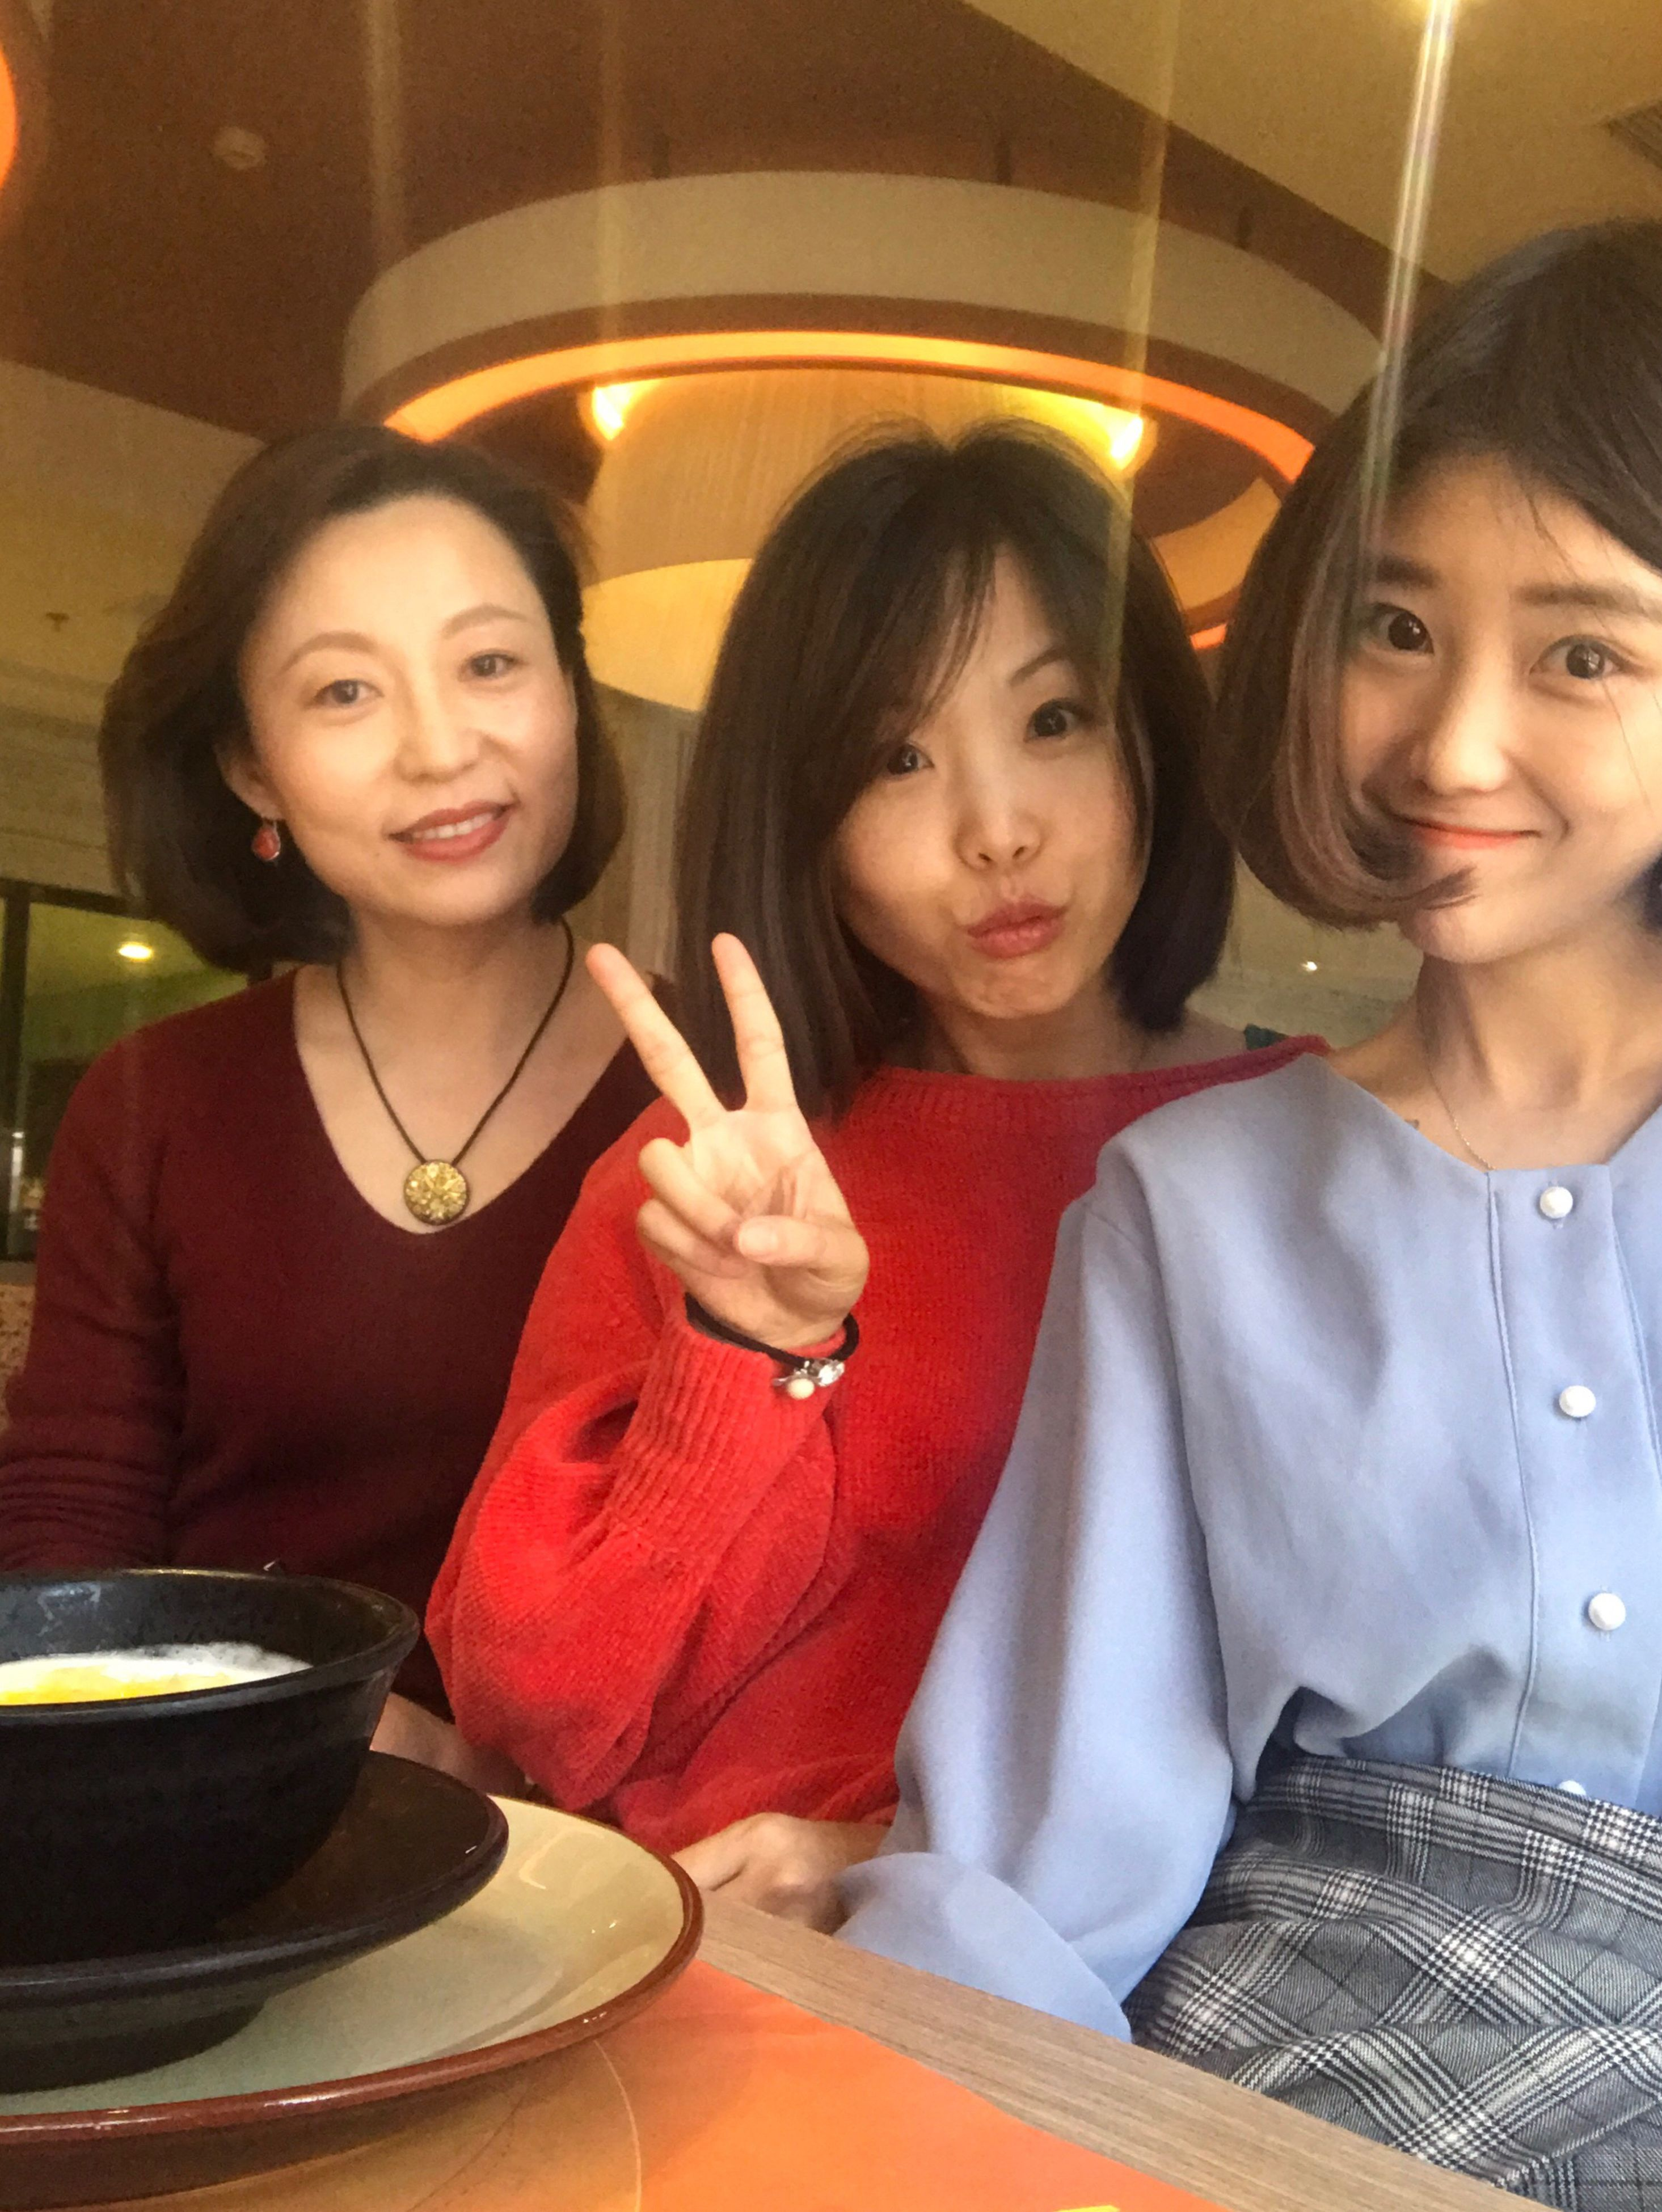 waist up, sitting, young women, lifestyles, women, archival, adults only, smiling, two people, cheerful, indoors, togetherness, friendship, people, young adult, city, night, only women, adult, fast food